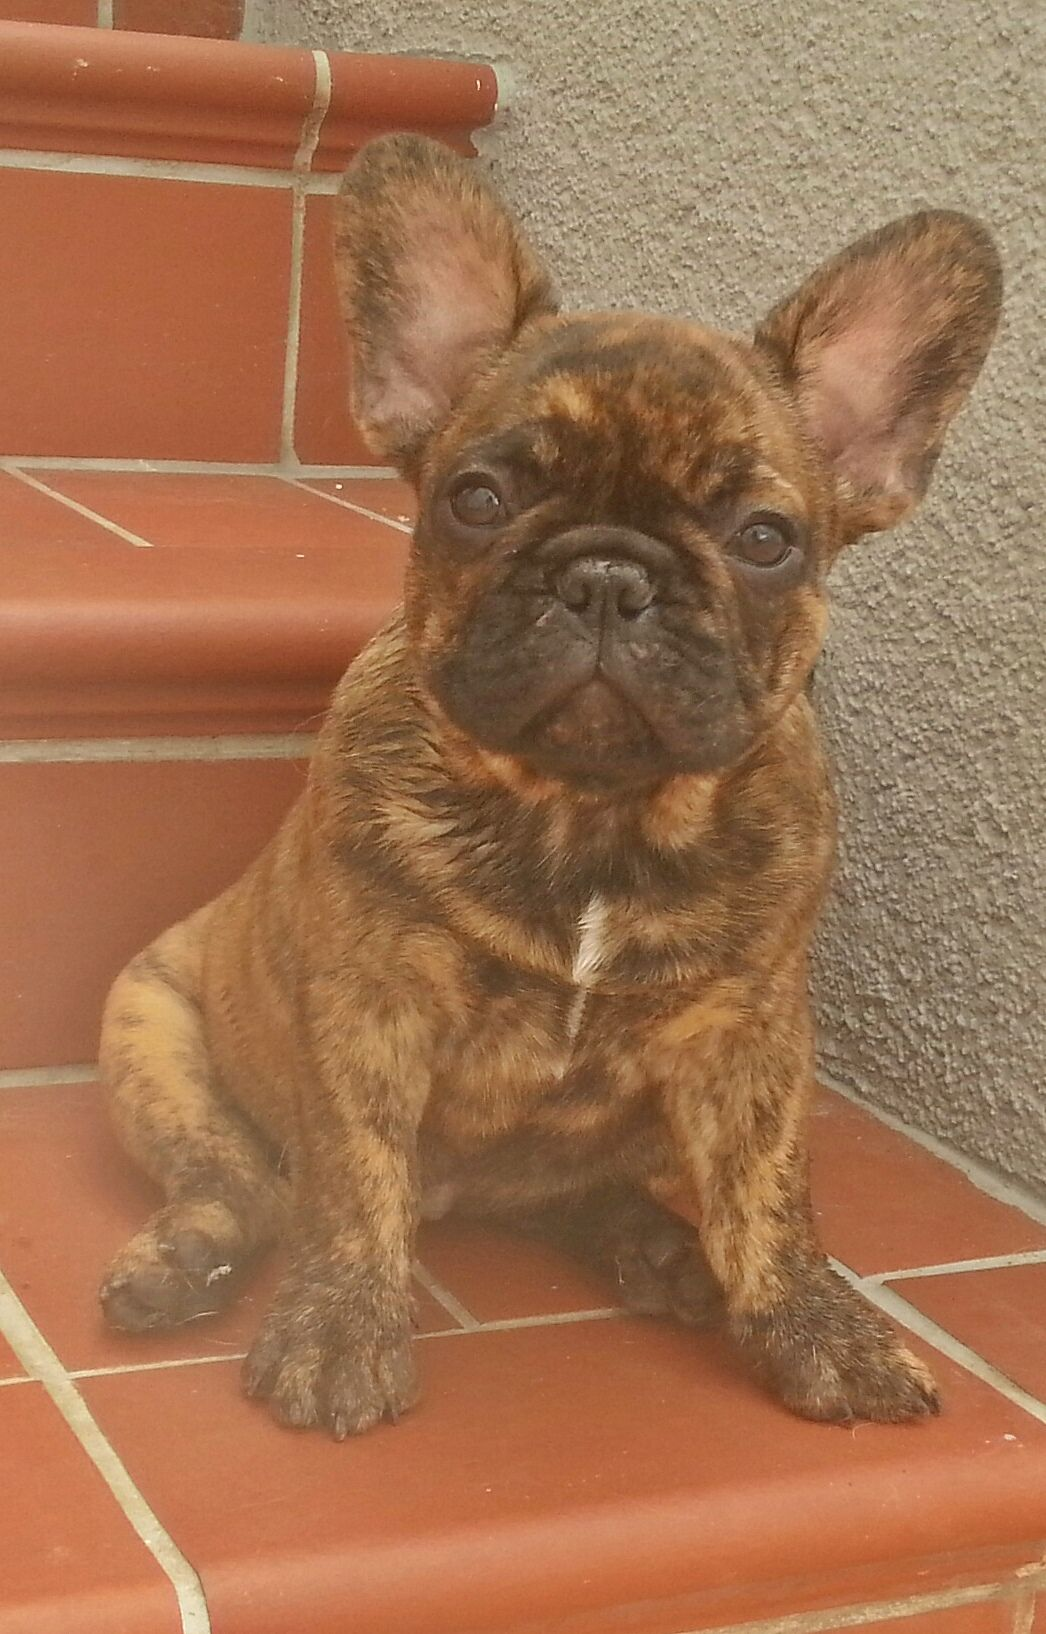 Bubbles 15 Wochen Http Bit Ly 1iy801a Our Smartphone App Http Bit Ly 1ewsxcp Brindle French Bulldog French Bulldog Bulldog Puppies